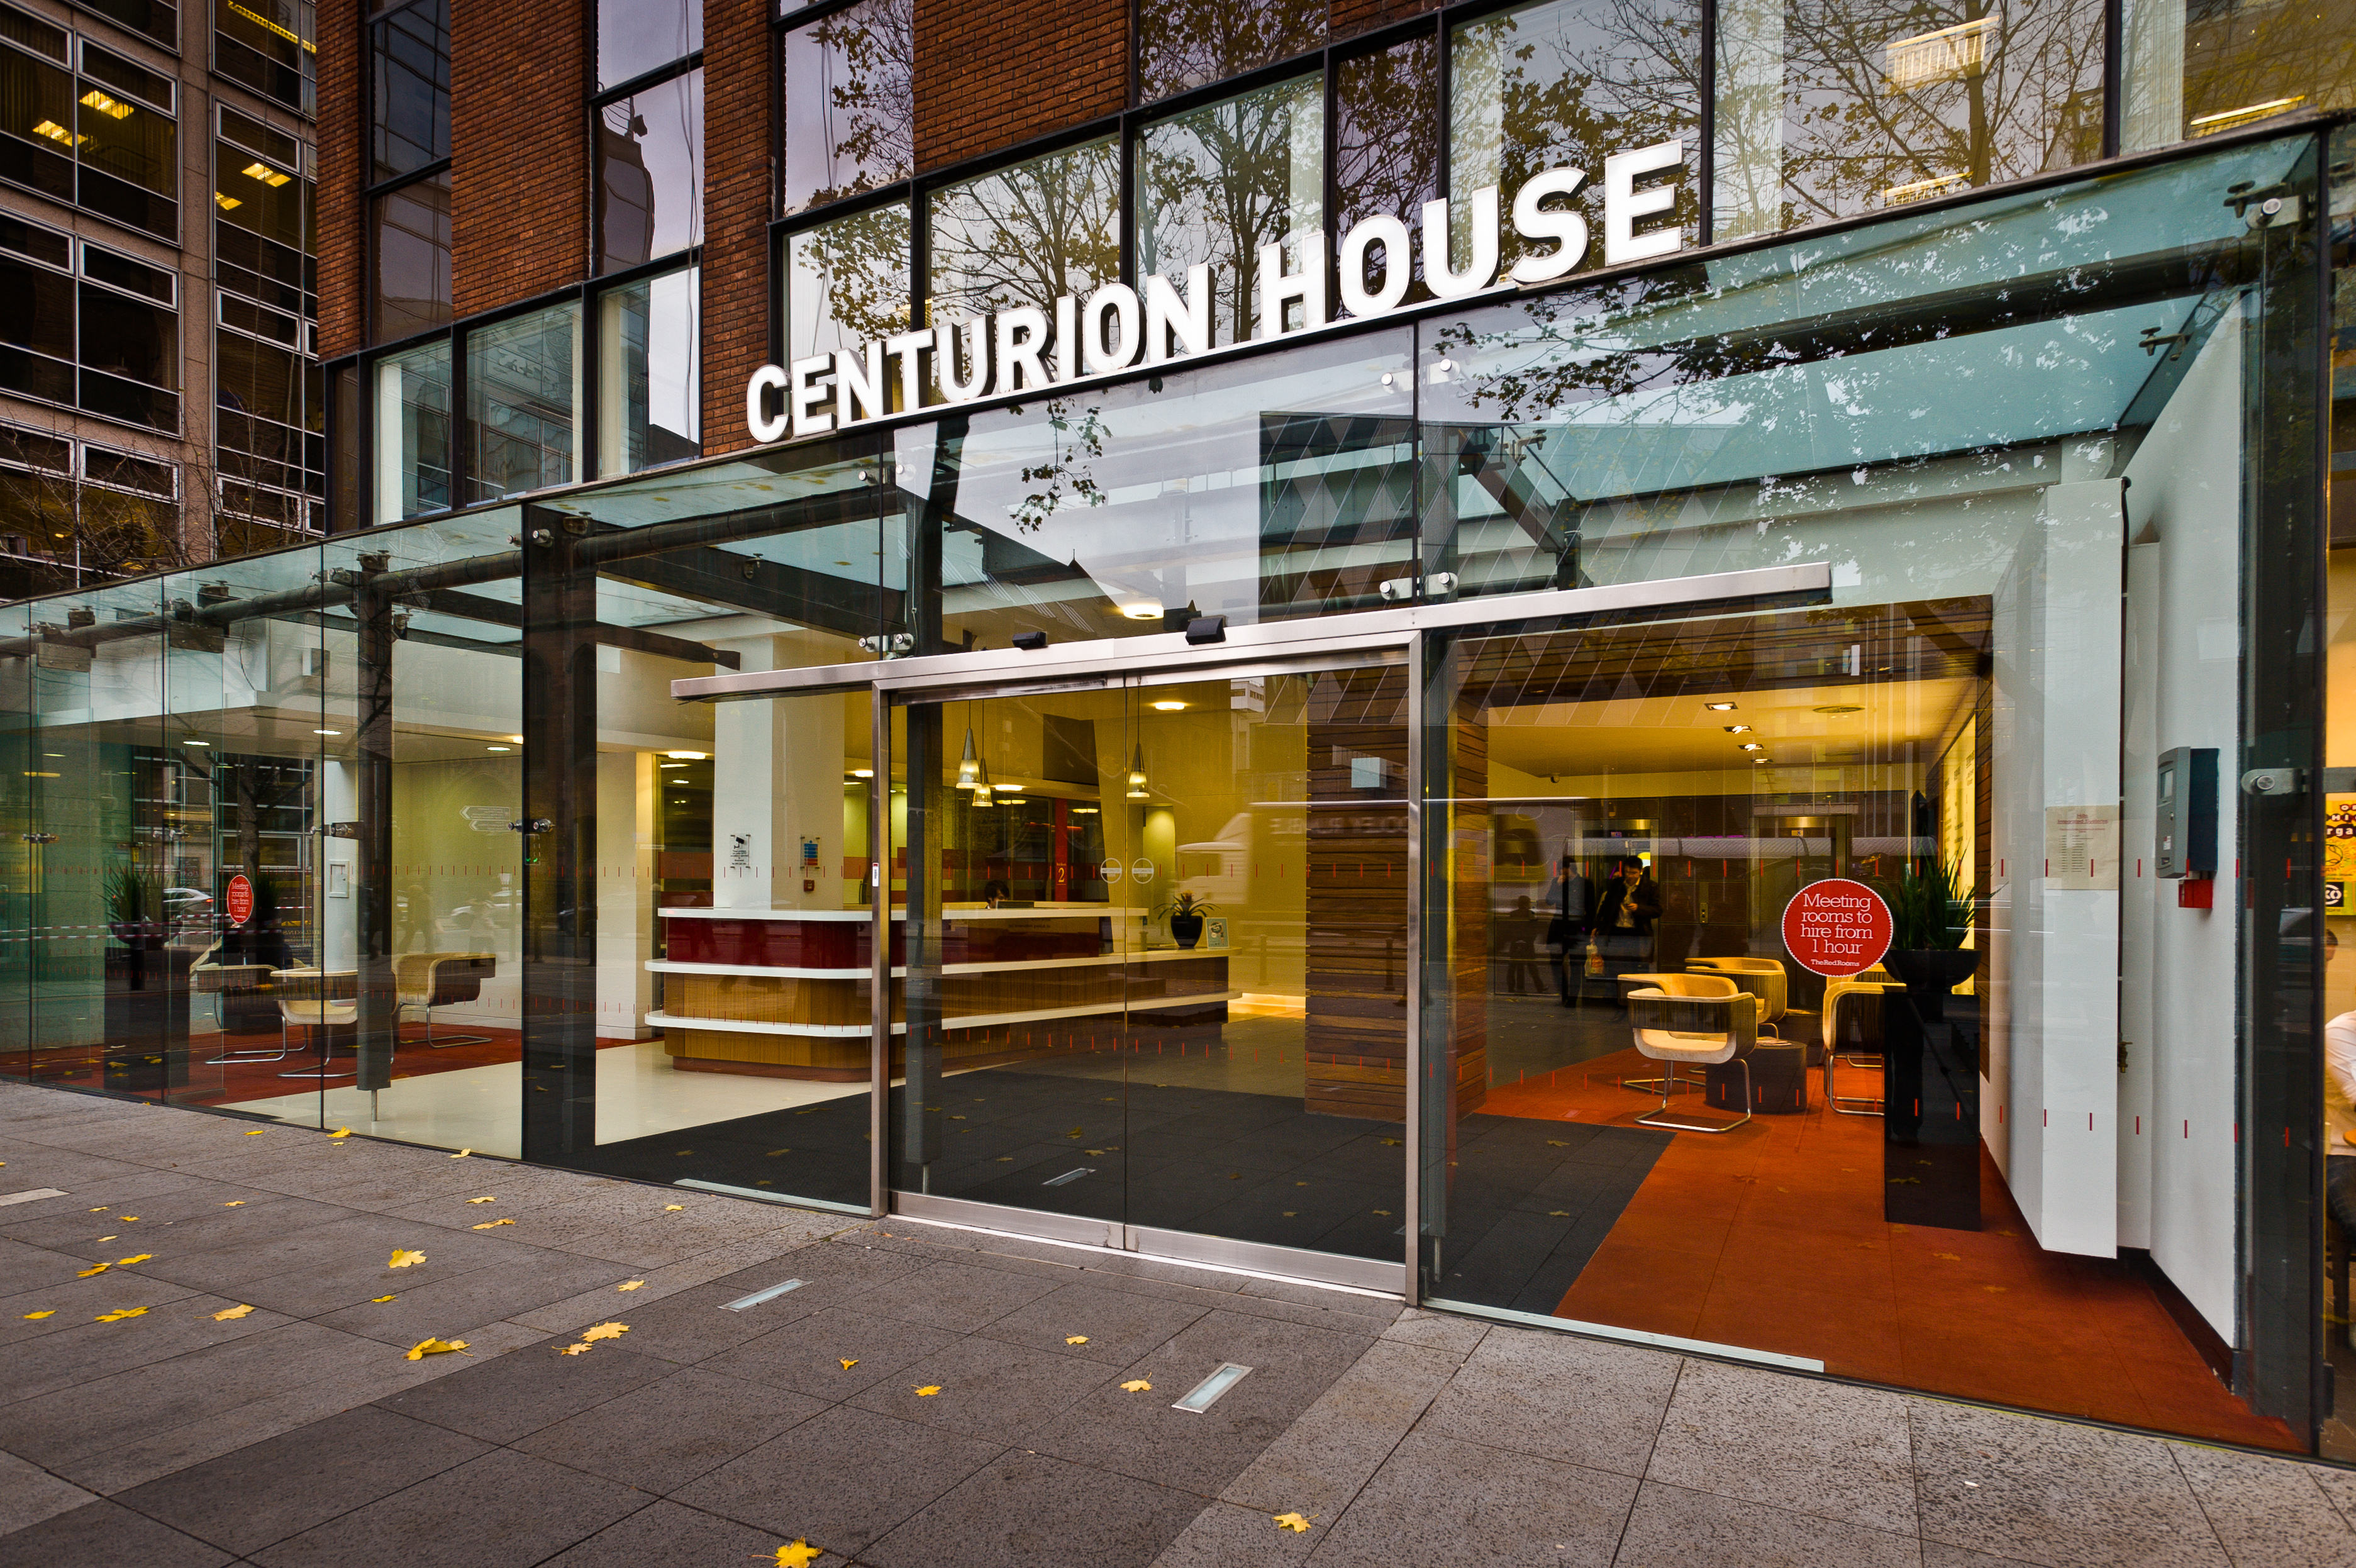 Centurion House on Deansgate